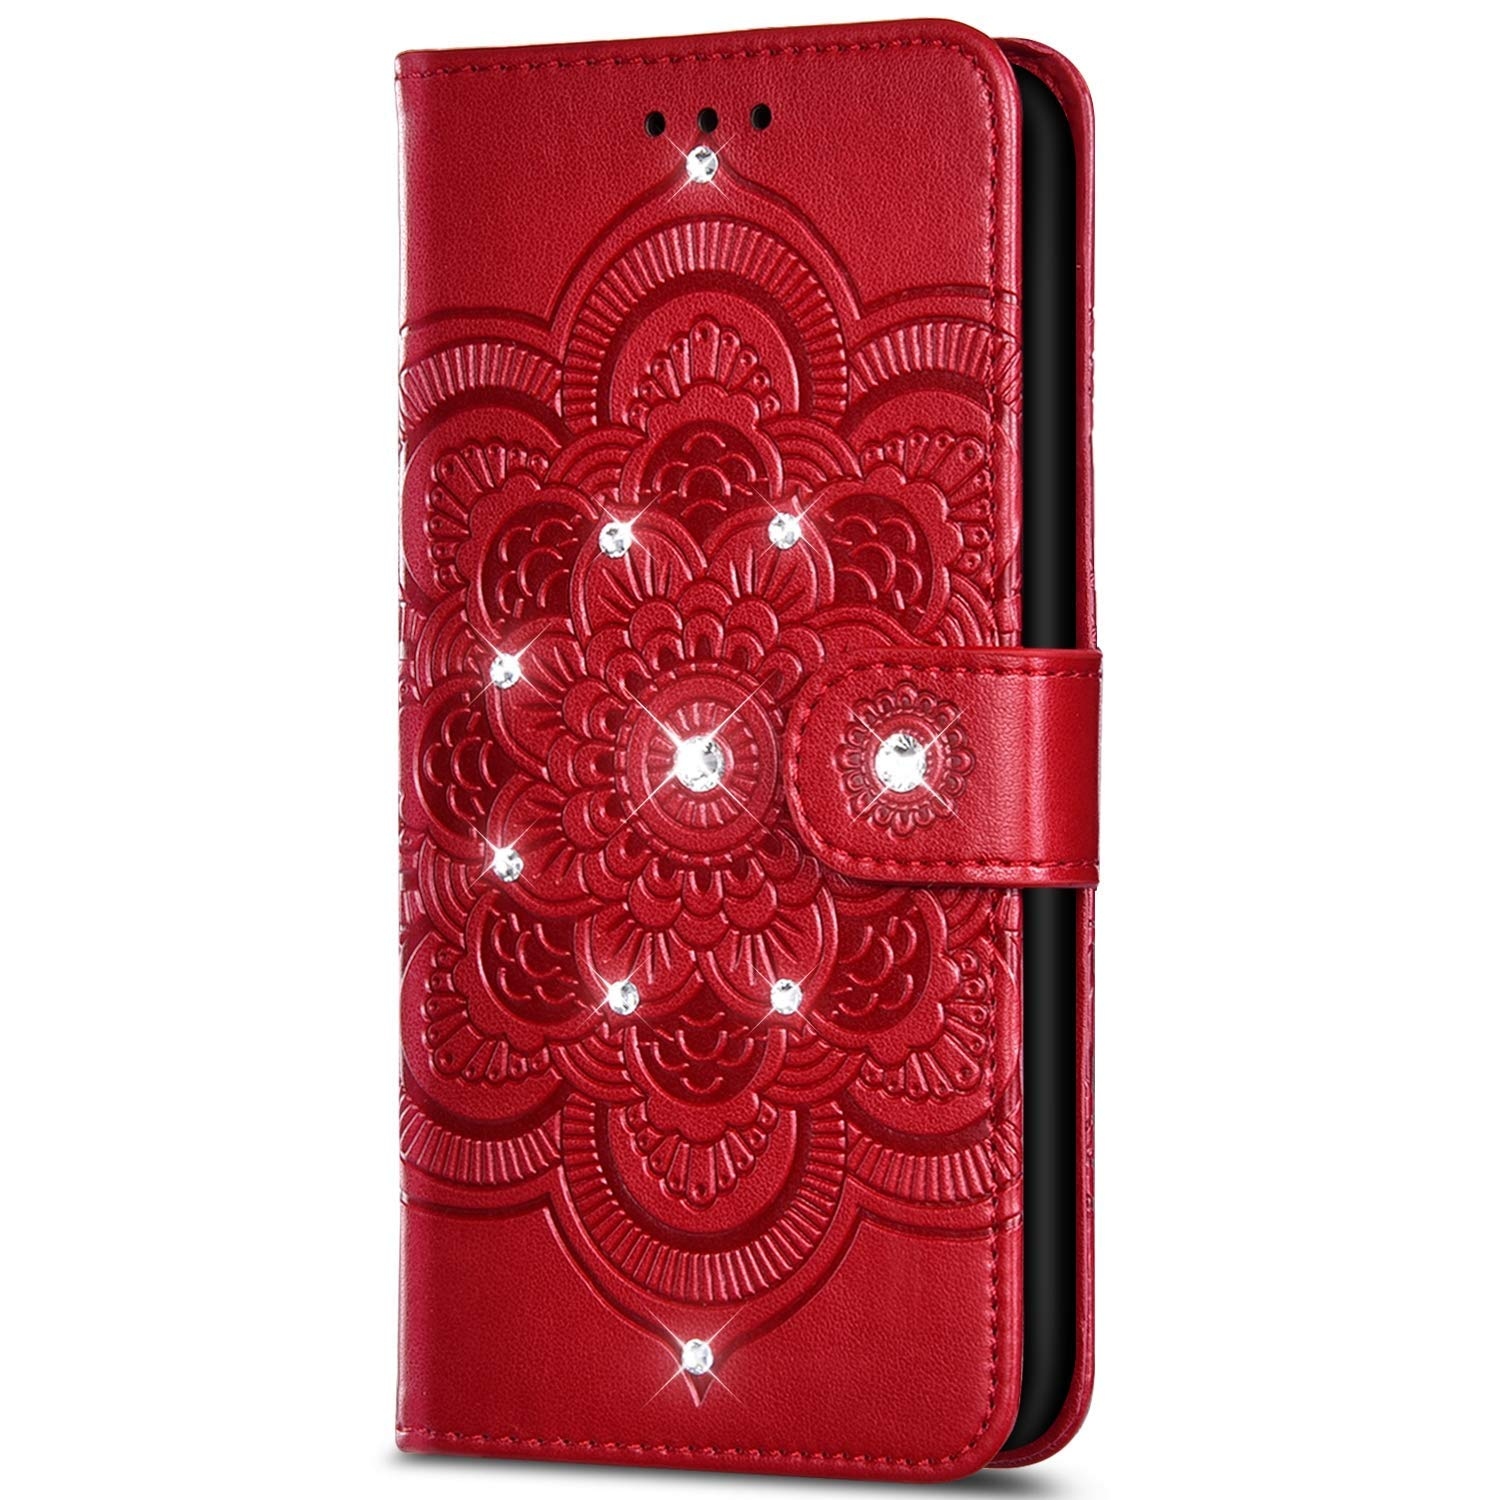 Case for Galaxy Note 10 Pro/Galaxy Note 10 Plus Bling Rhinestone Embossed Flip PU Leather Wallet Case with Stand Function[Card Slots][Magnetic closure]for Galaxy Note 10 Pro/Galaxy Note 10 Plus,Red by ikasus